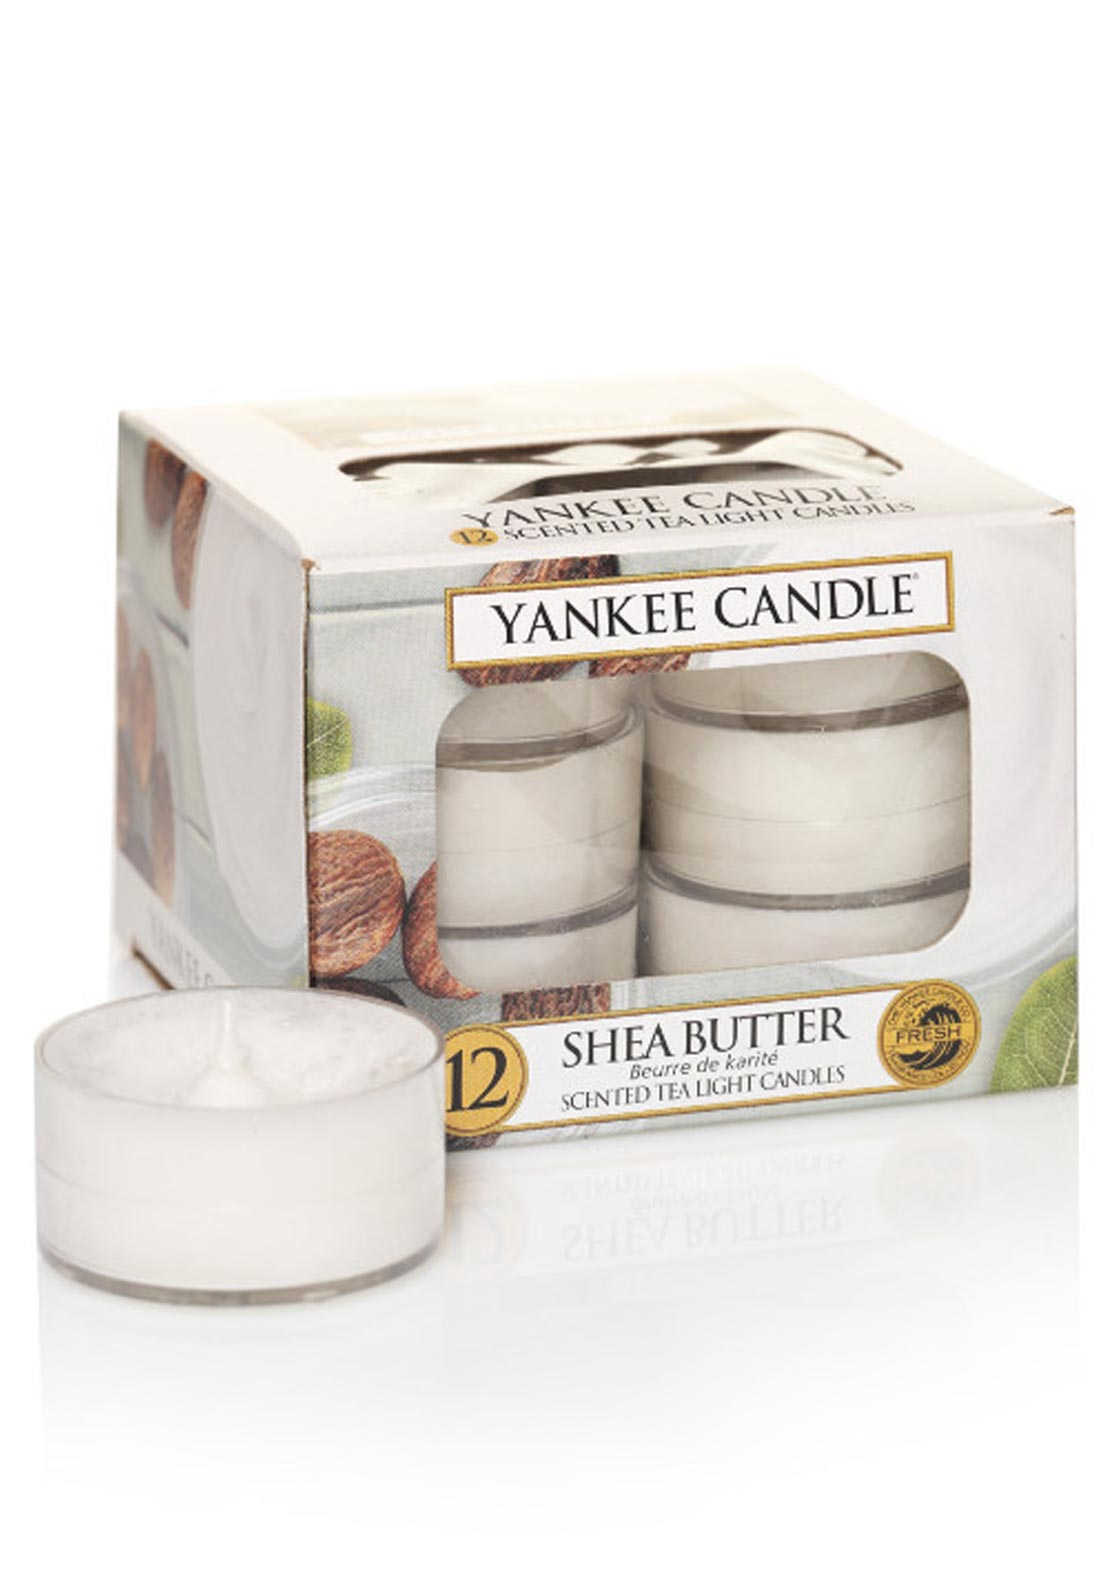 Yankee Candle 12 Scented Tea Light Candles, Shea Butter